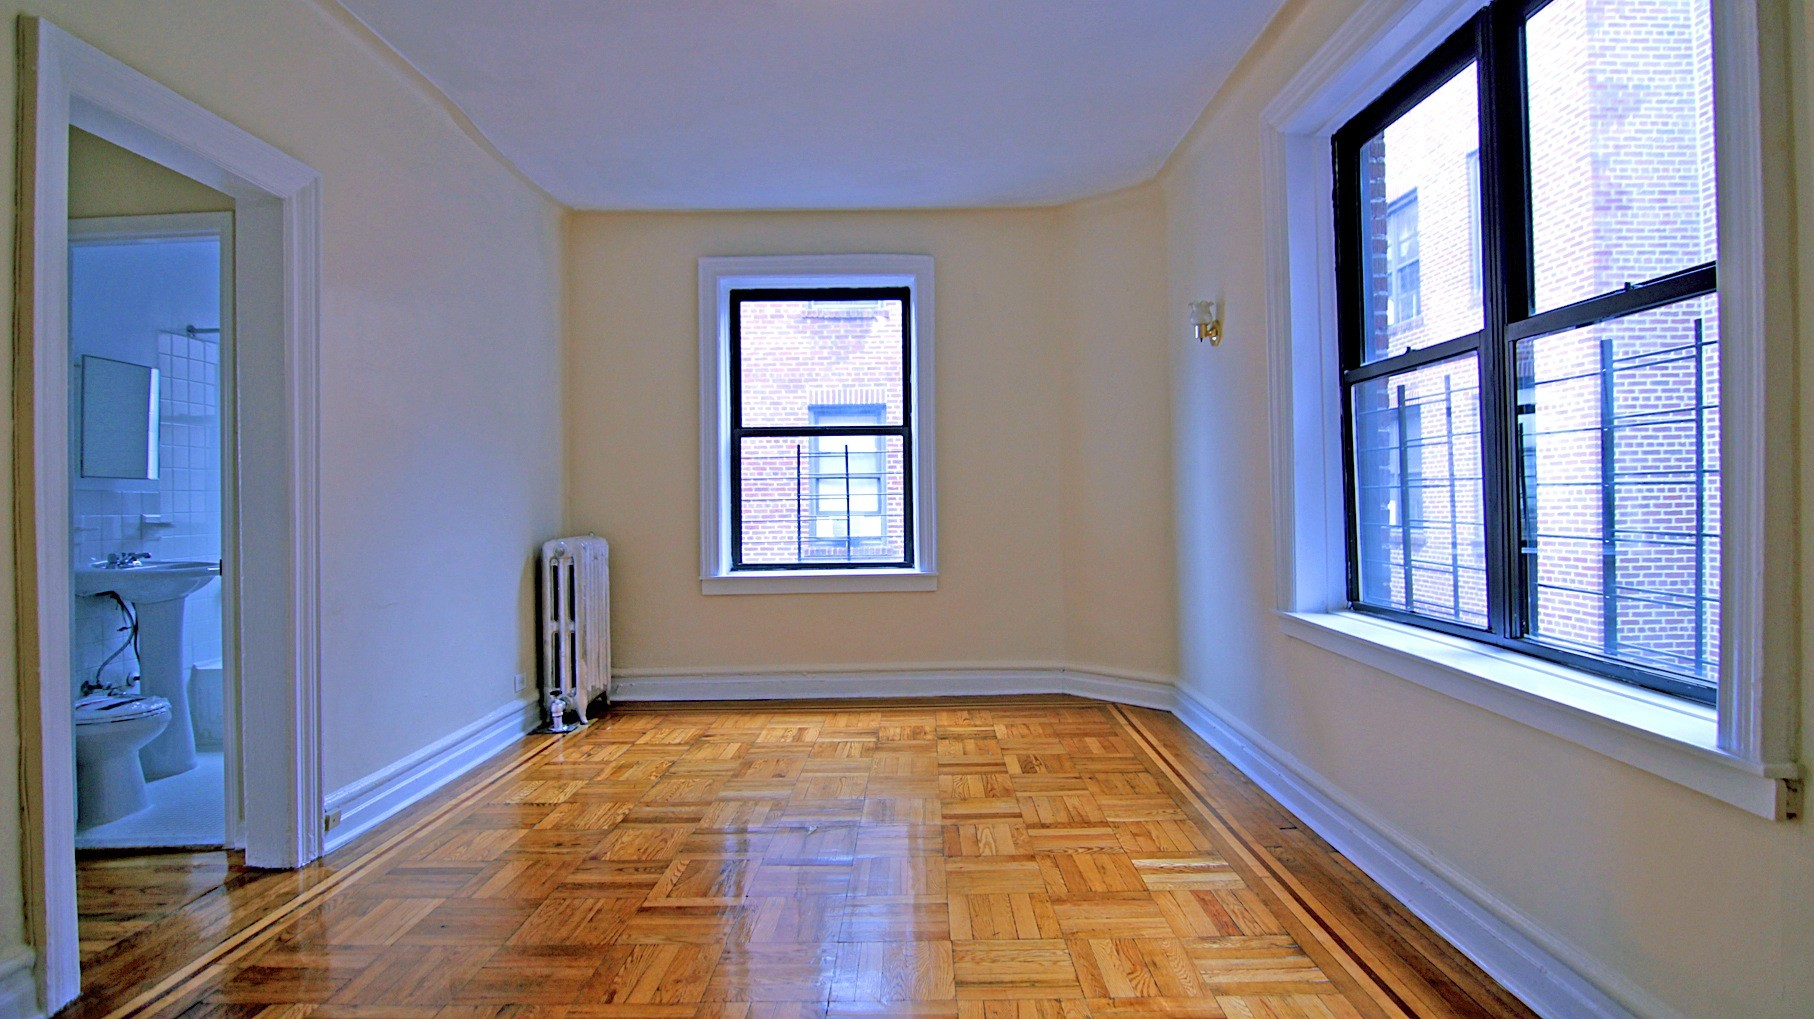 Walton Ave C4 Bronx Ny 10452 1 Bedroom Apartment For Rent Padmapper